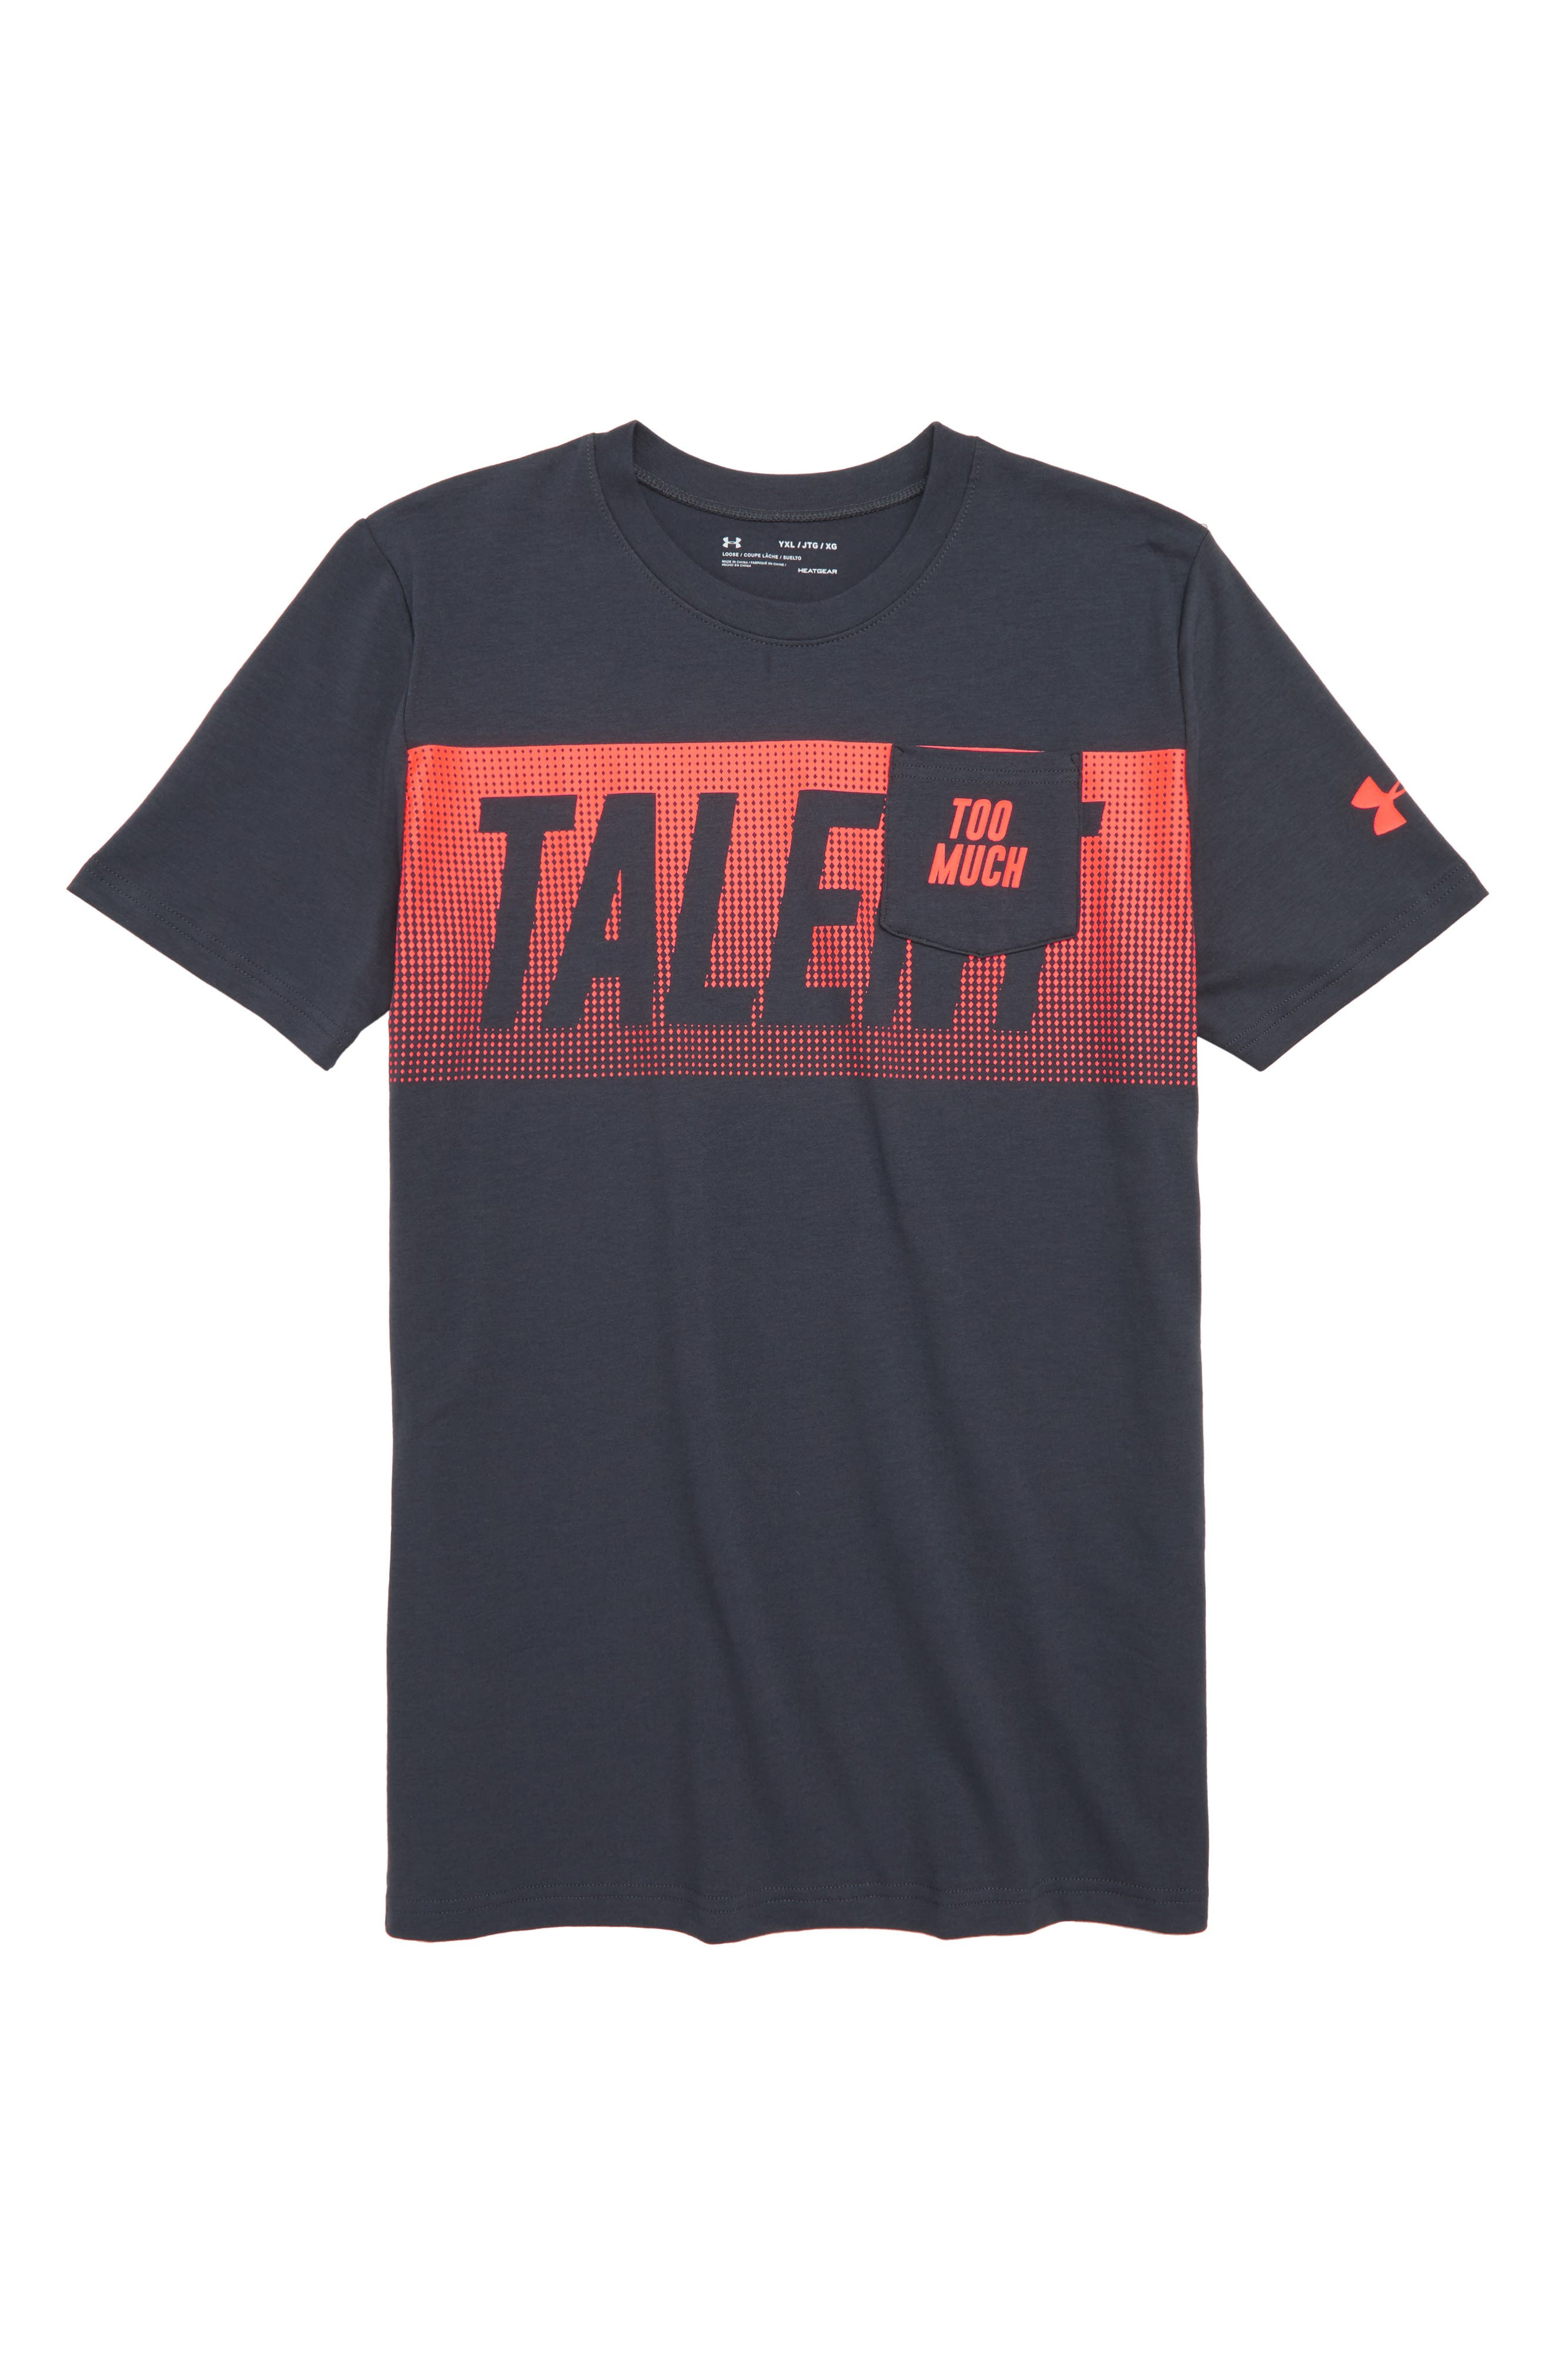 Too Much Talent T-Shirt,                             Main thumbnail 1, color,                             021